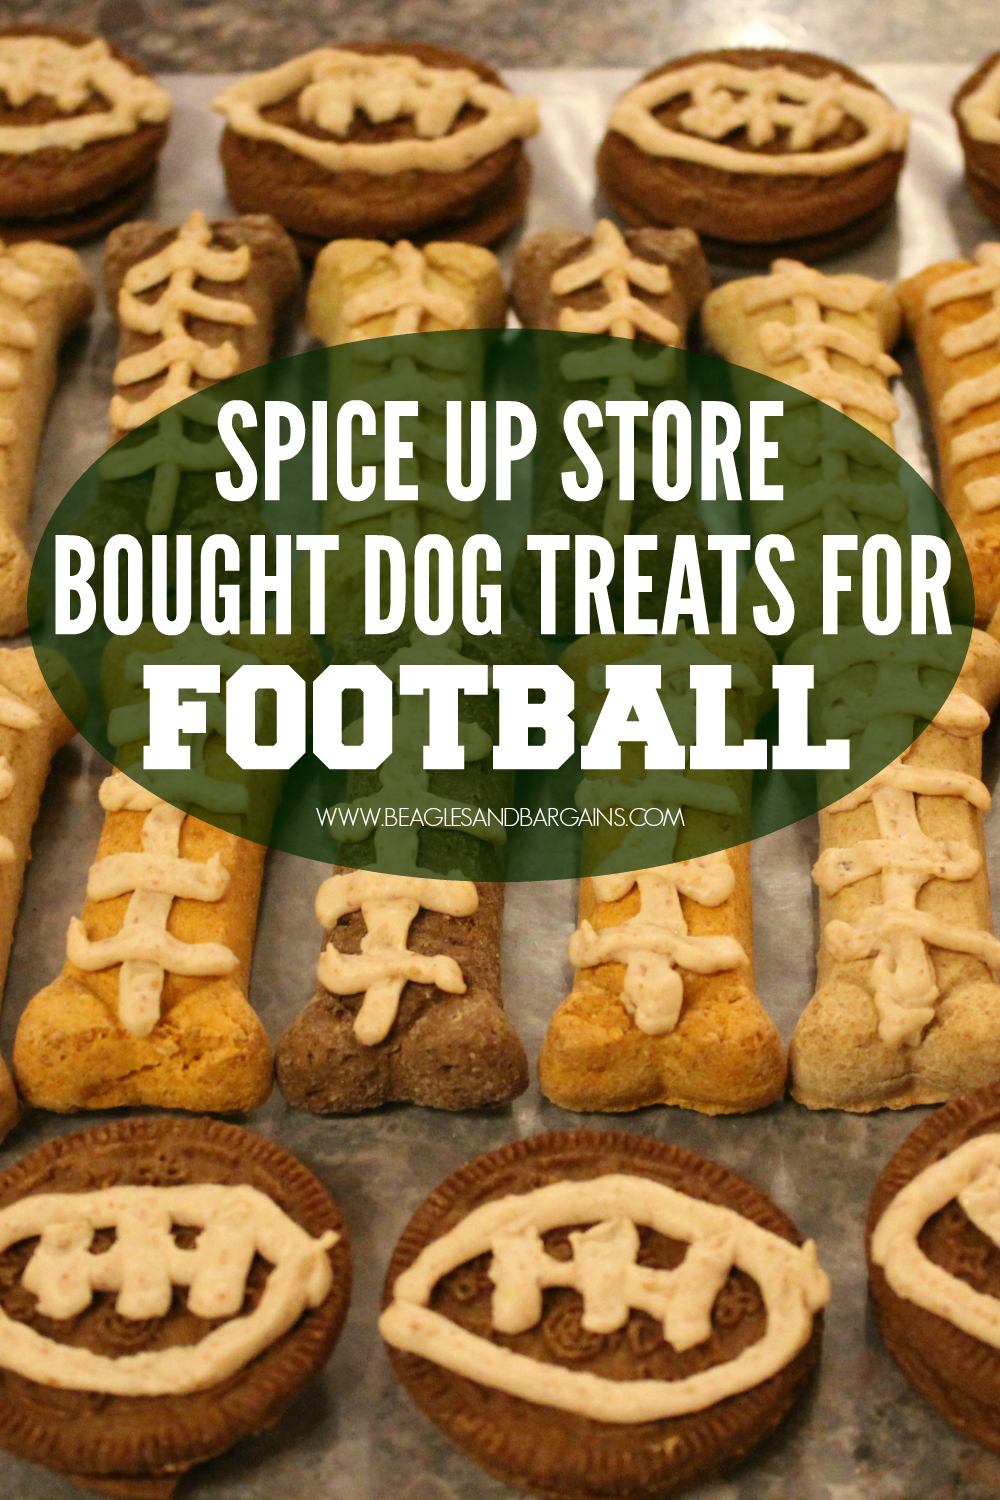 How to Spice Up Store Bought Dog Treats for Football Season